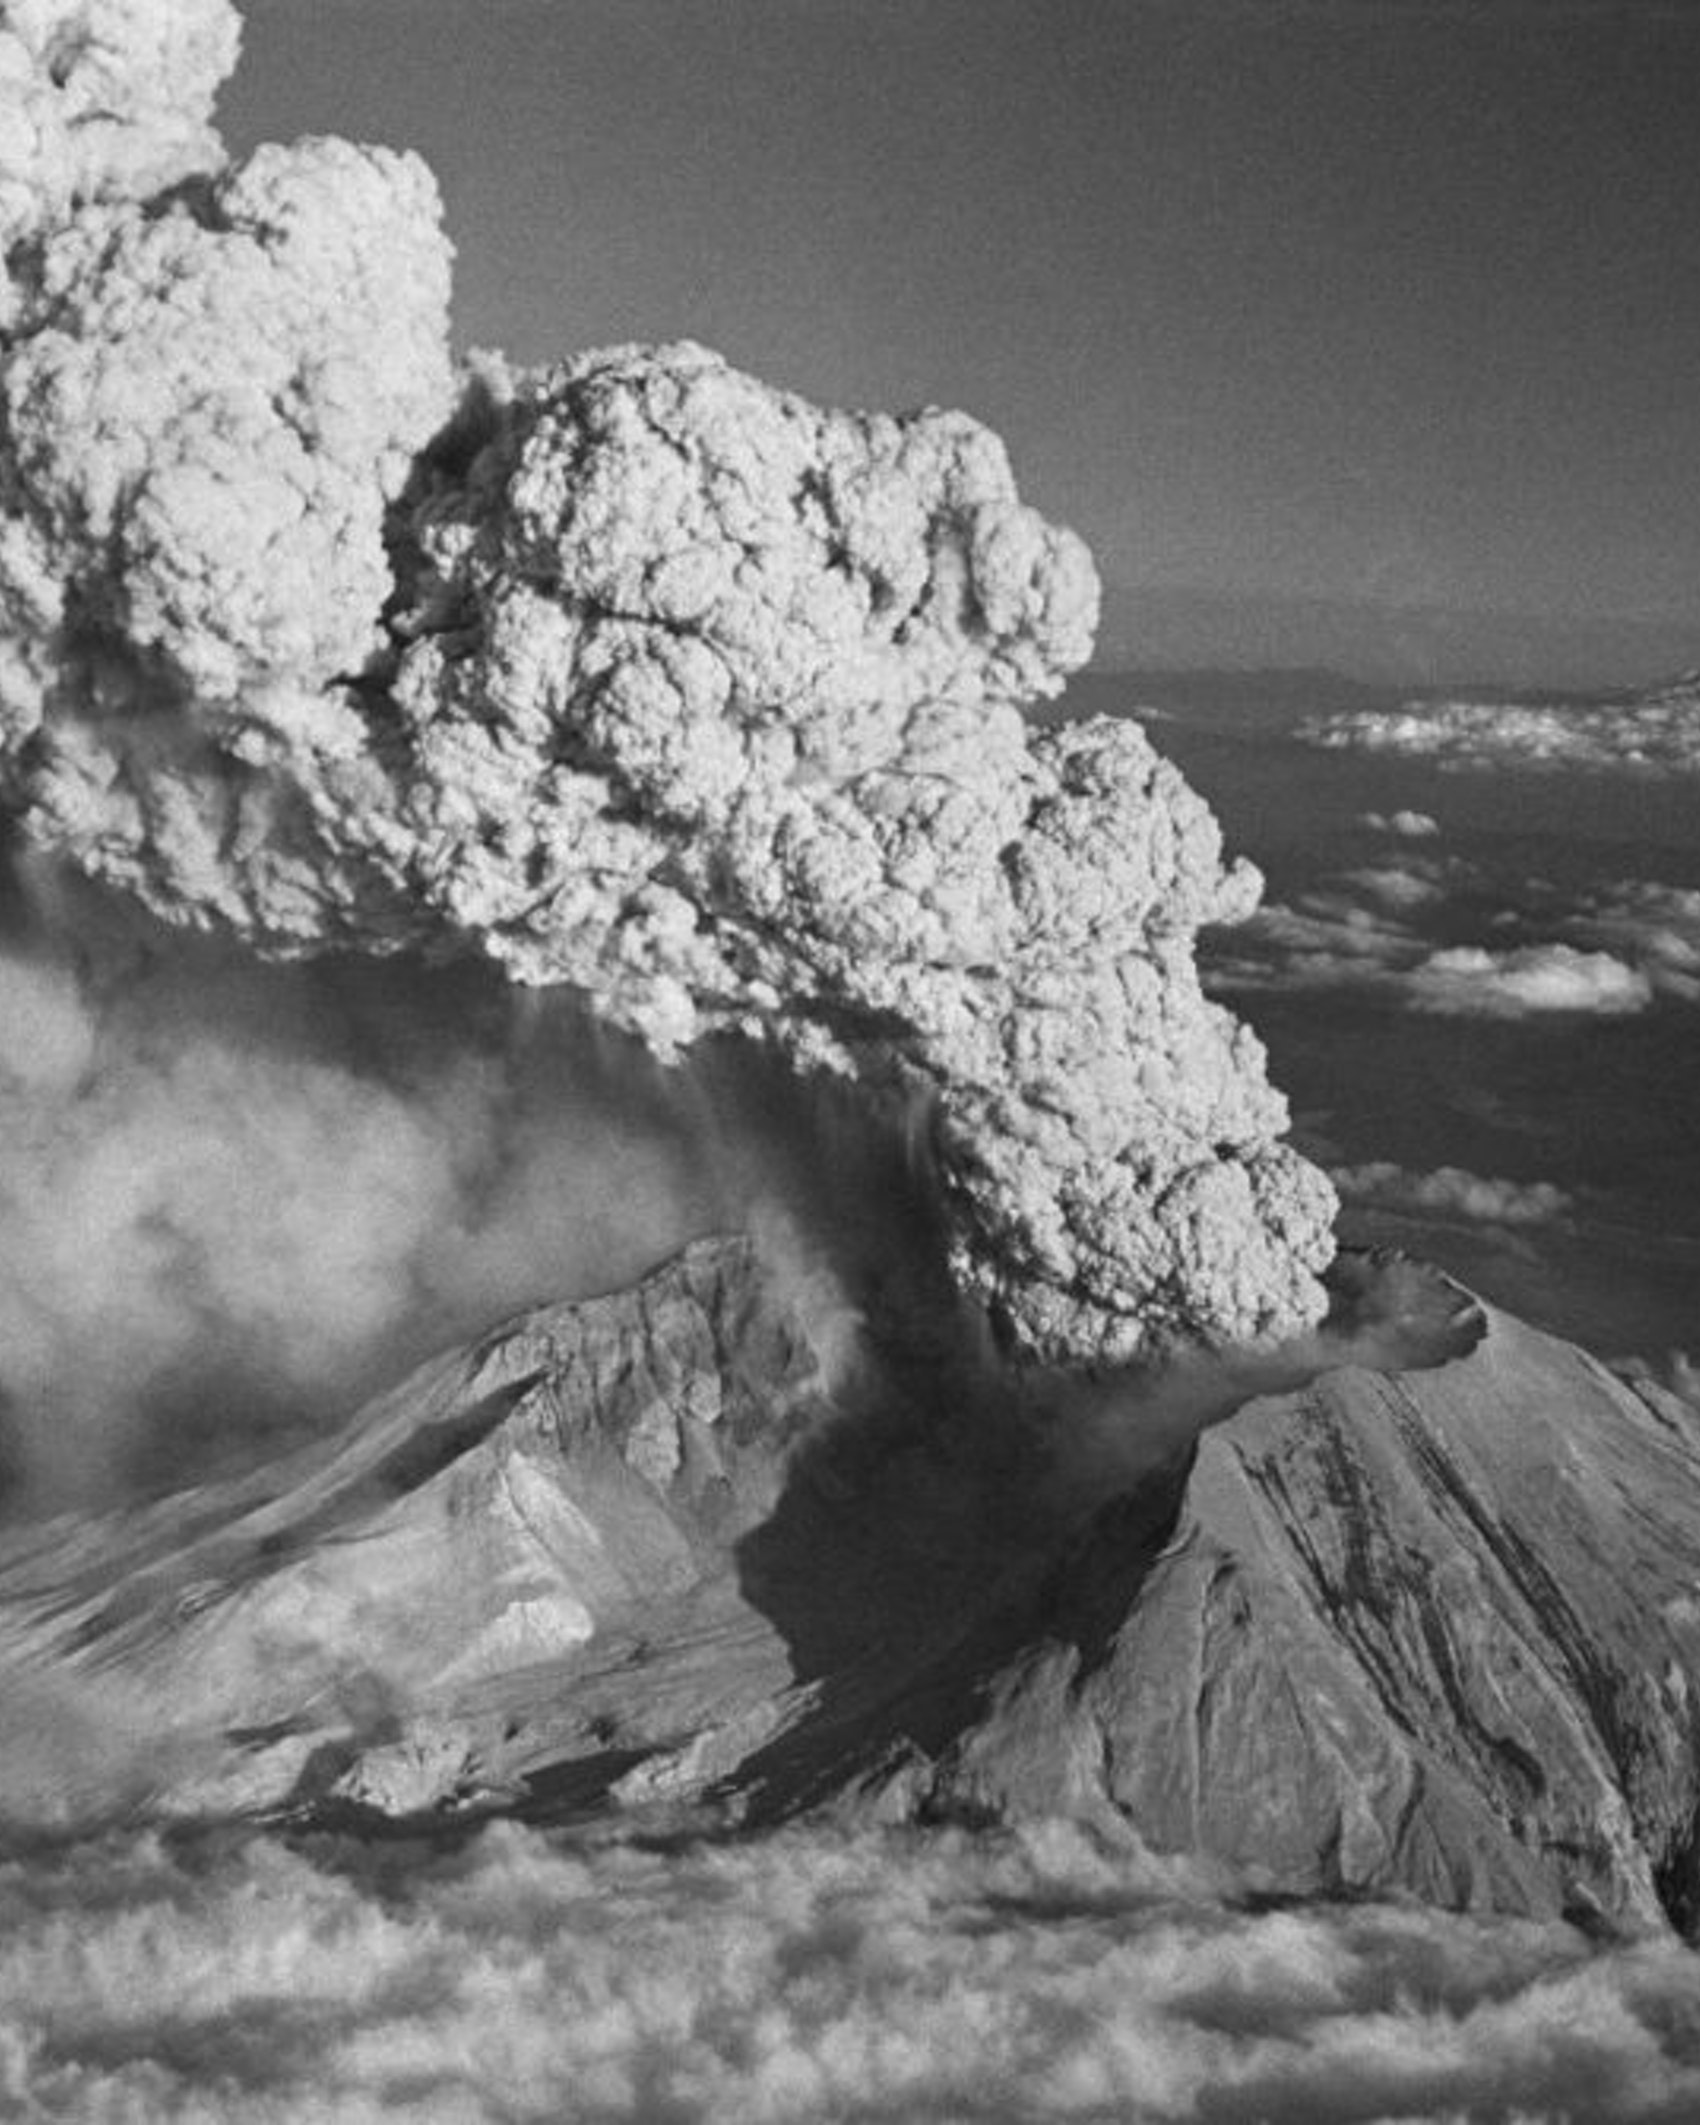 """(Original Caption) """"BLOWS TOP AGAIN."""" SPIRIT LAKE,WASH.: WITH MOUNT HOOD (RIGHT,REAR) VISIBLE IN THE BACKGROUND, MOUNT ST.HELENS ERUPTS JULY 22. THE PLUME OF STEAM AND ASH ROSE SOME 60,000 FEET IN THE AIR, SENDING ASH IN A NORTHEASTERLY DIRECTION. MOUNT ST.HELENS BROKE A SIX-WEEK SILENCE WITH A SERIES OF TOWERING ASH ERUPTIONS. JULY 29,1980."""